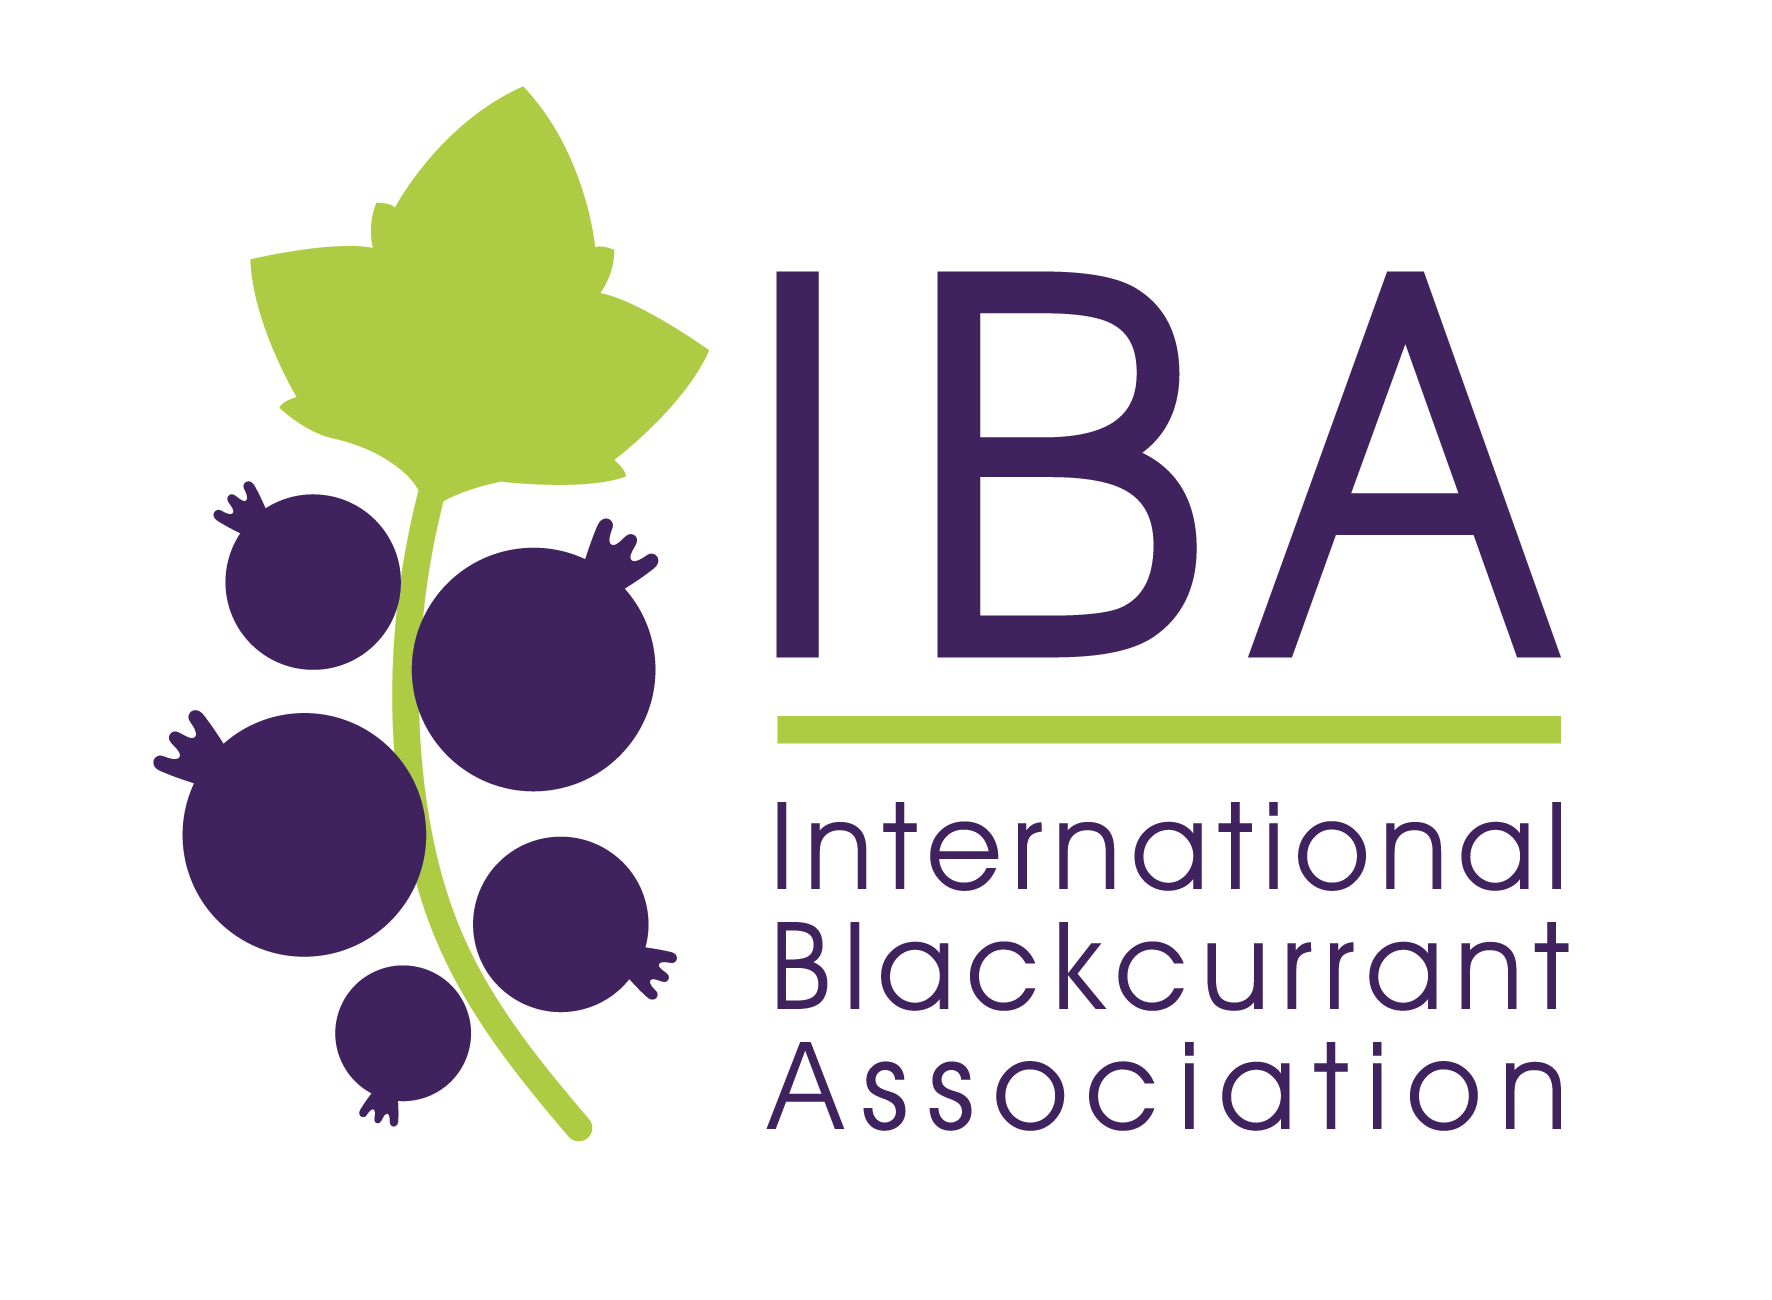 International Blackcurrant Association Logo